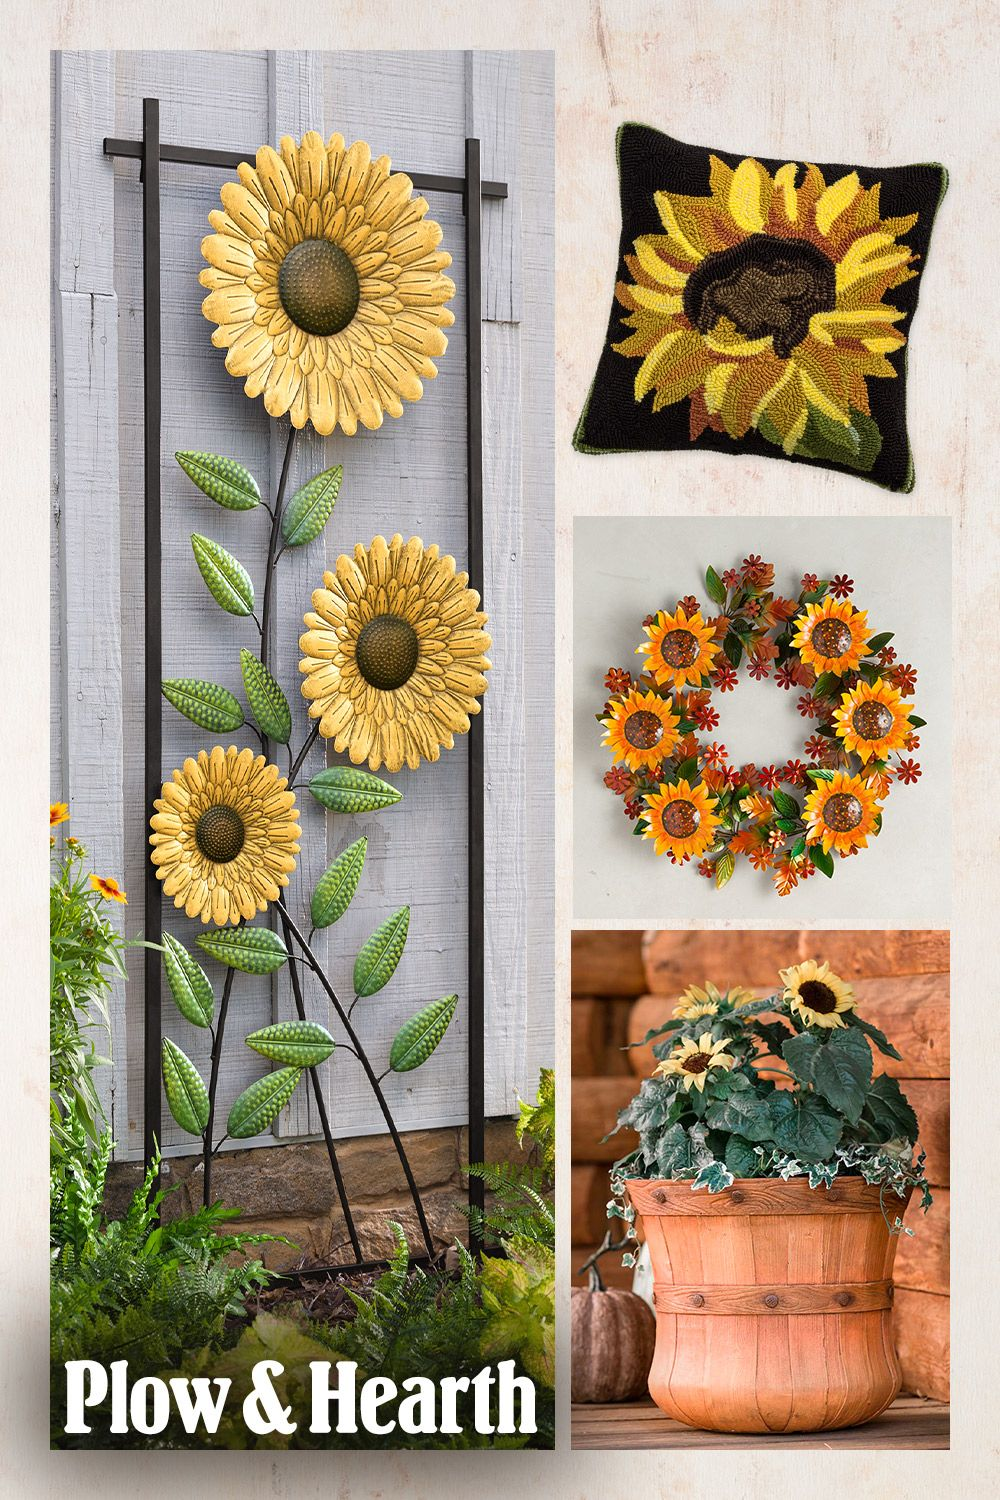 Sunny sunflowers brighten any space with their lovely